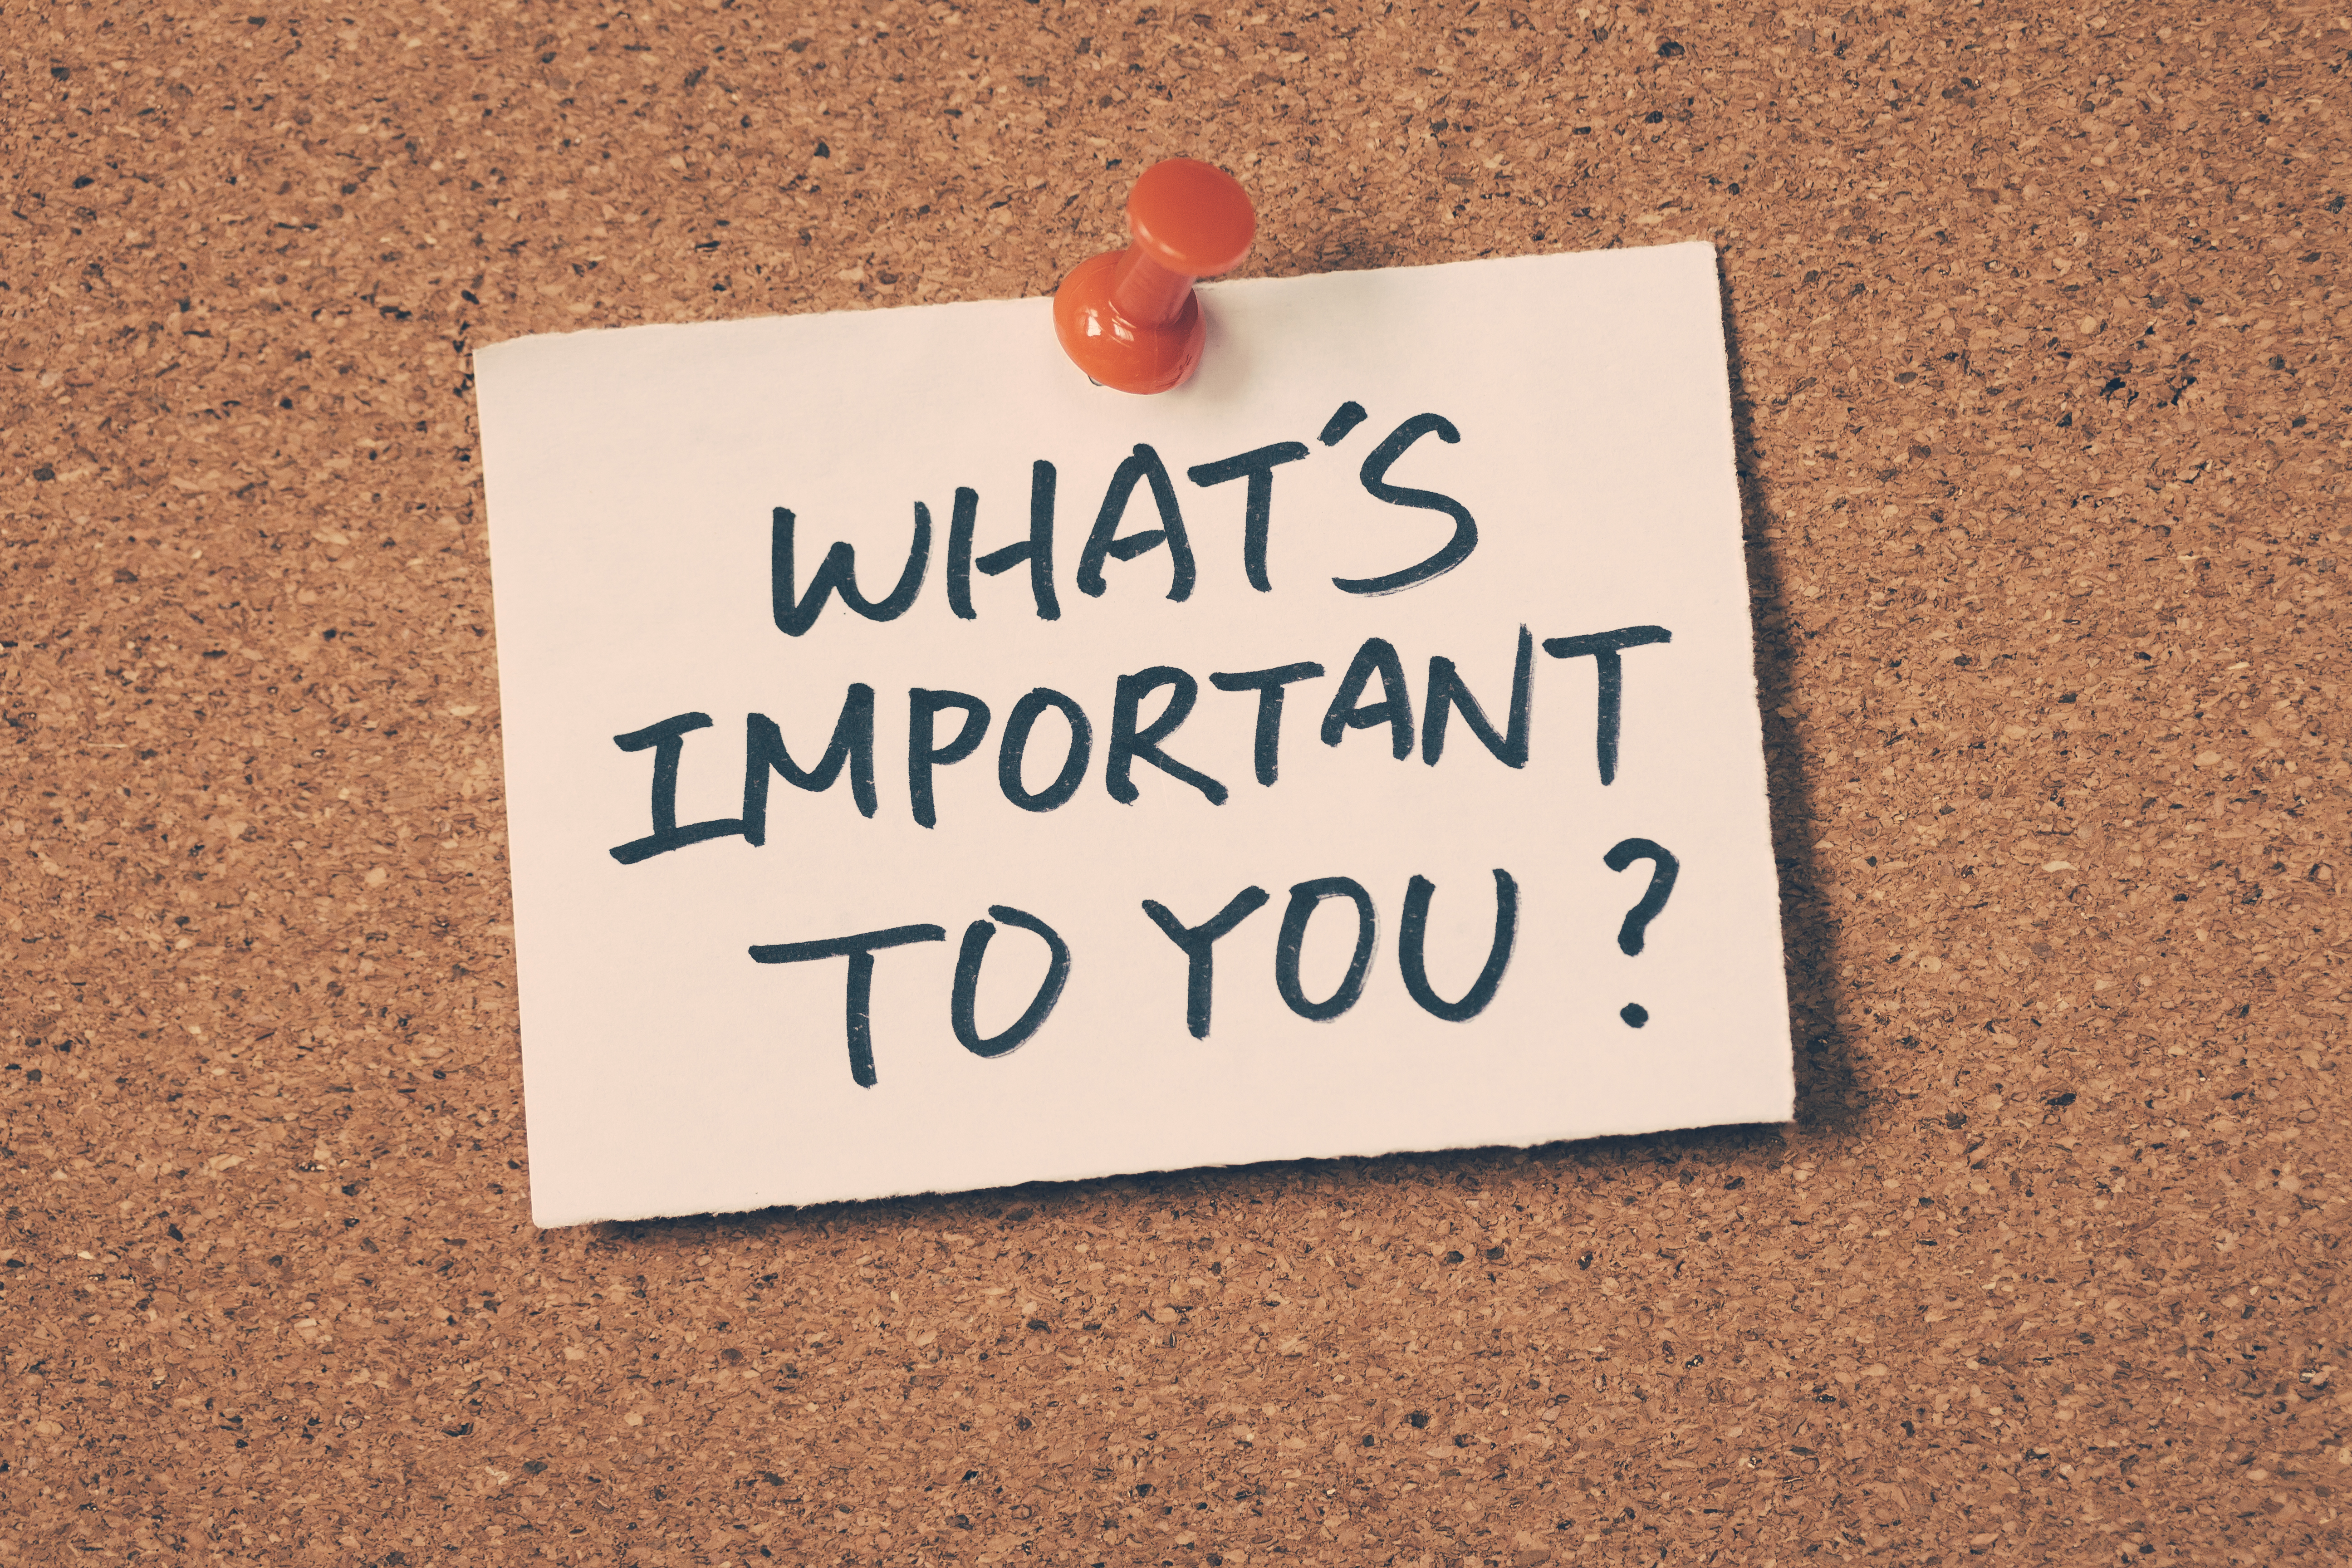 what's important to you note pinned on the bulletin board